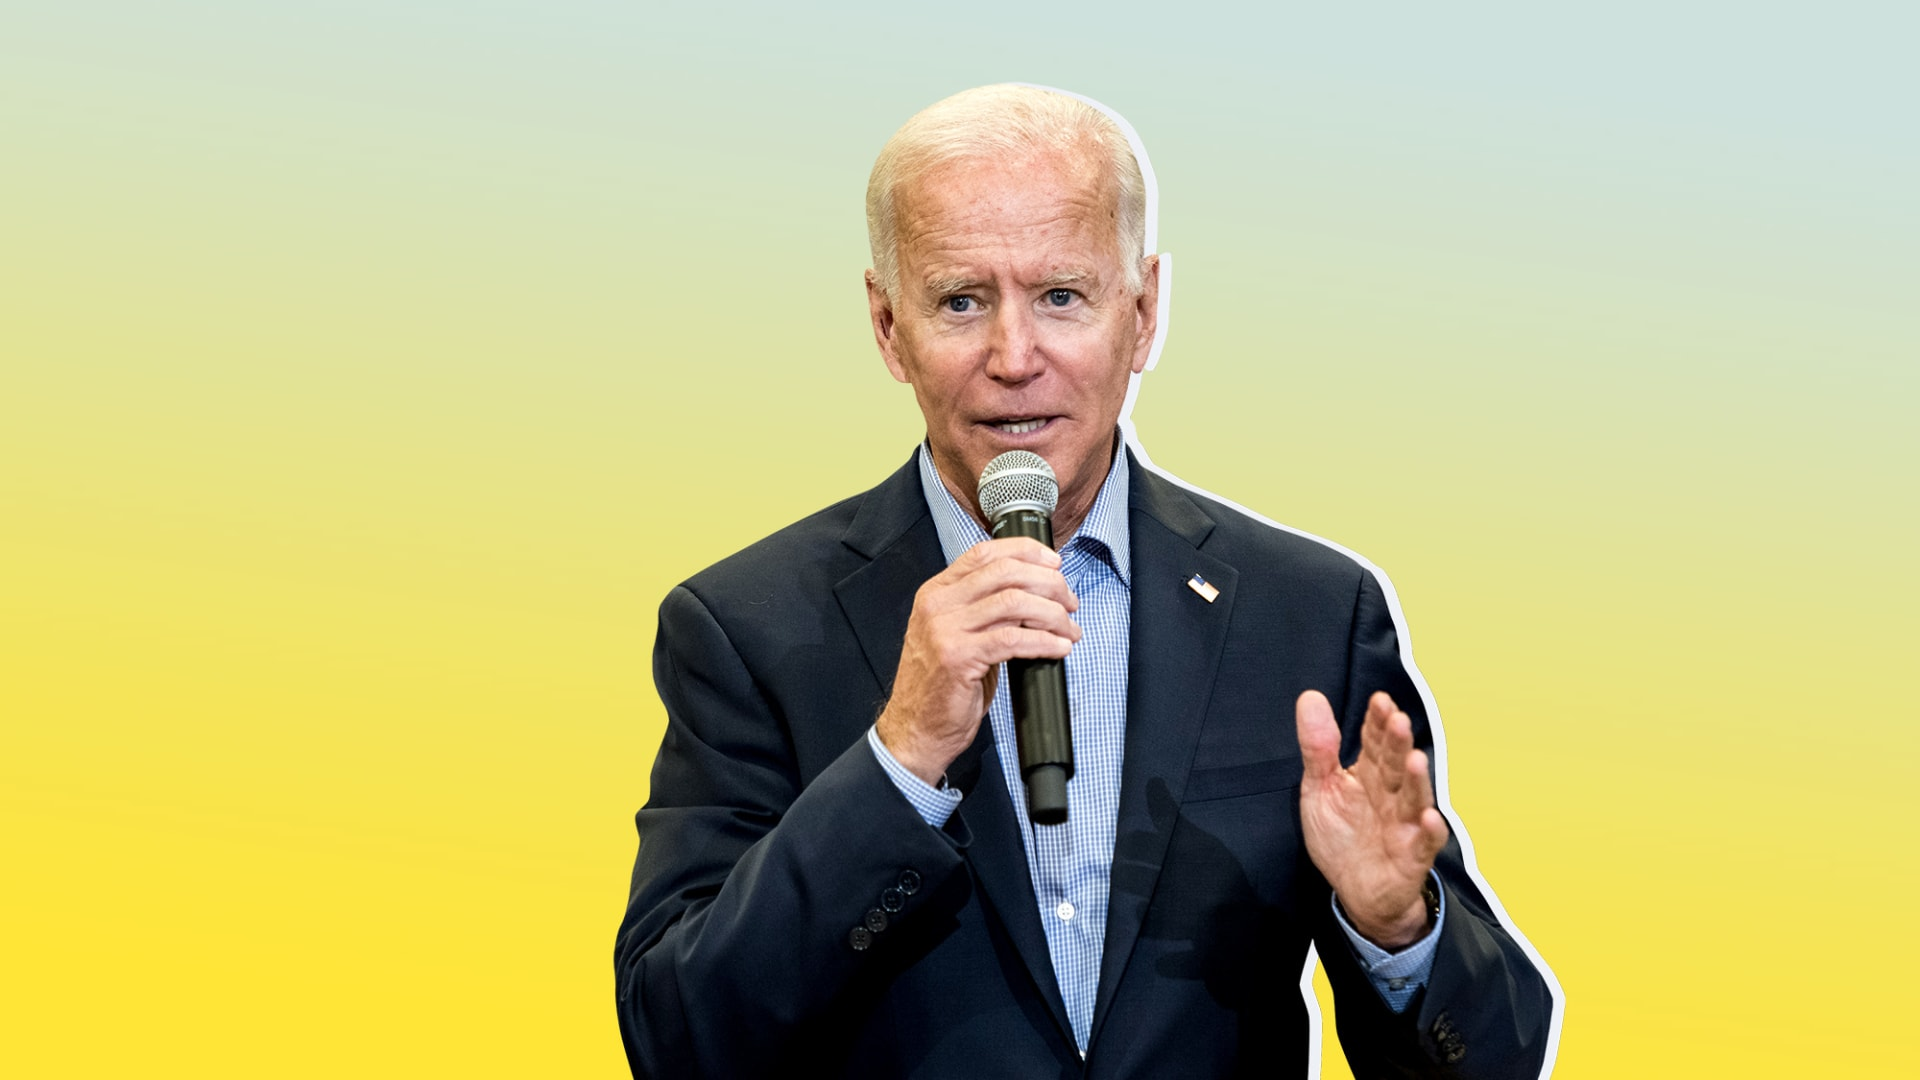 Biden's Big Plans for Small Business in His First 100 Days